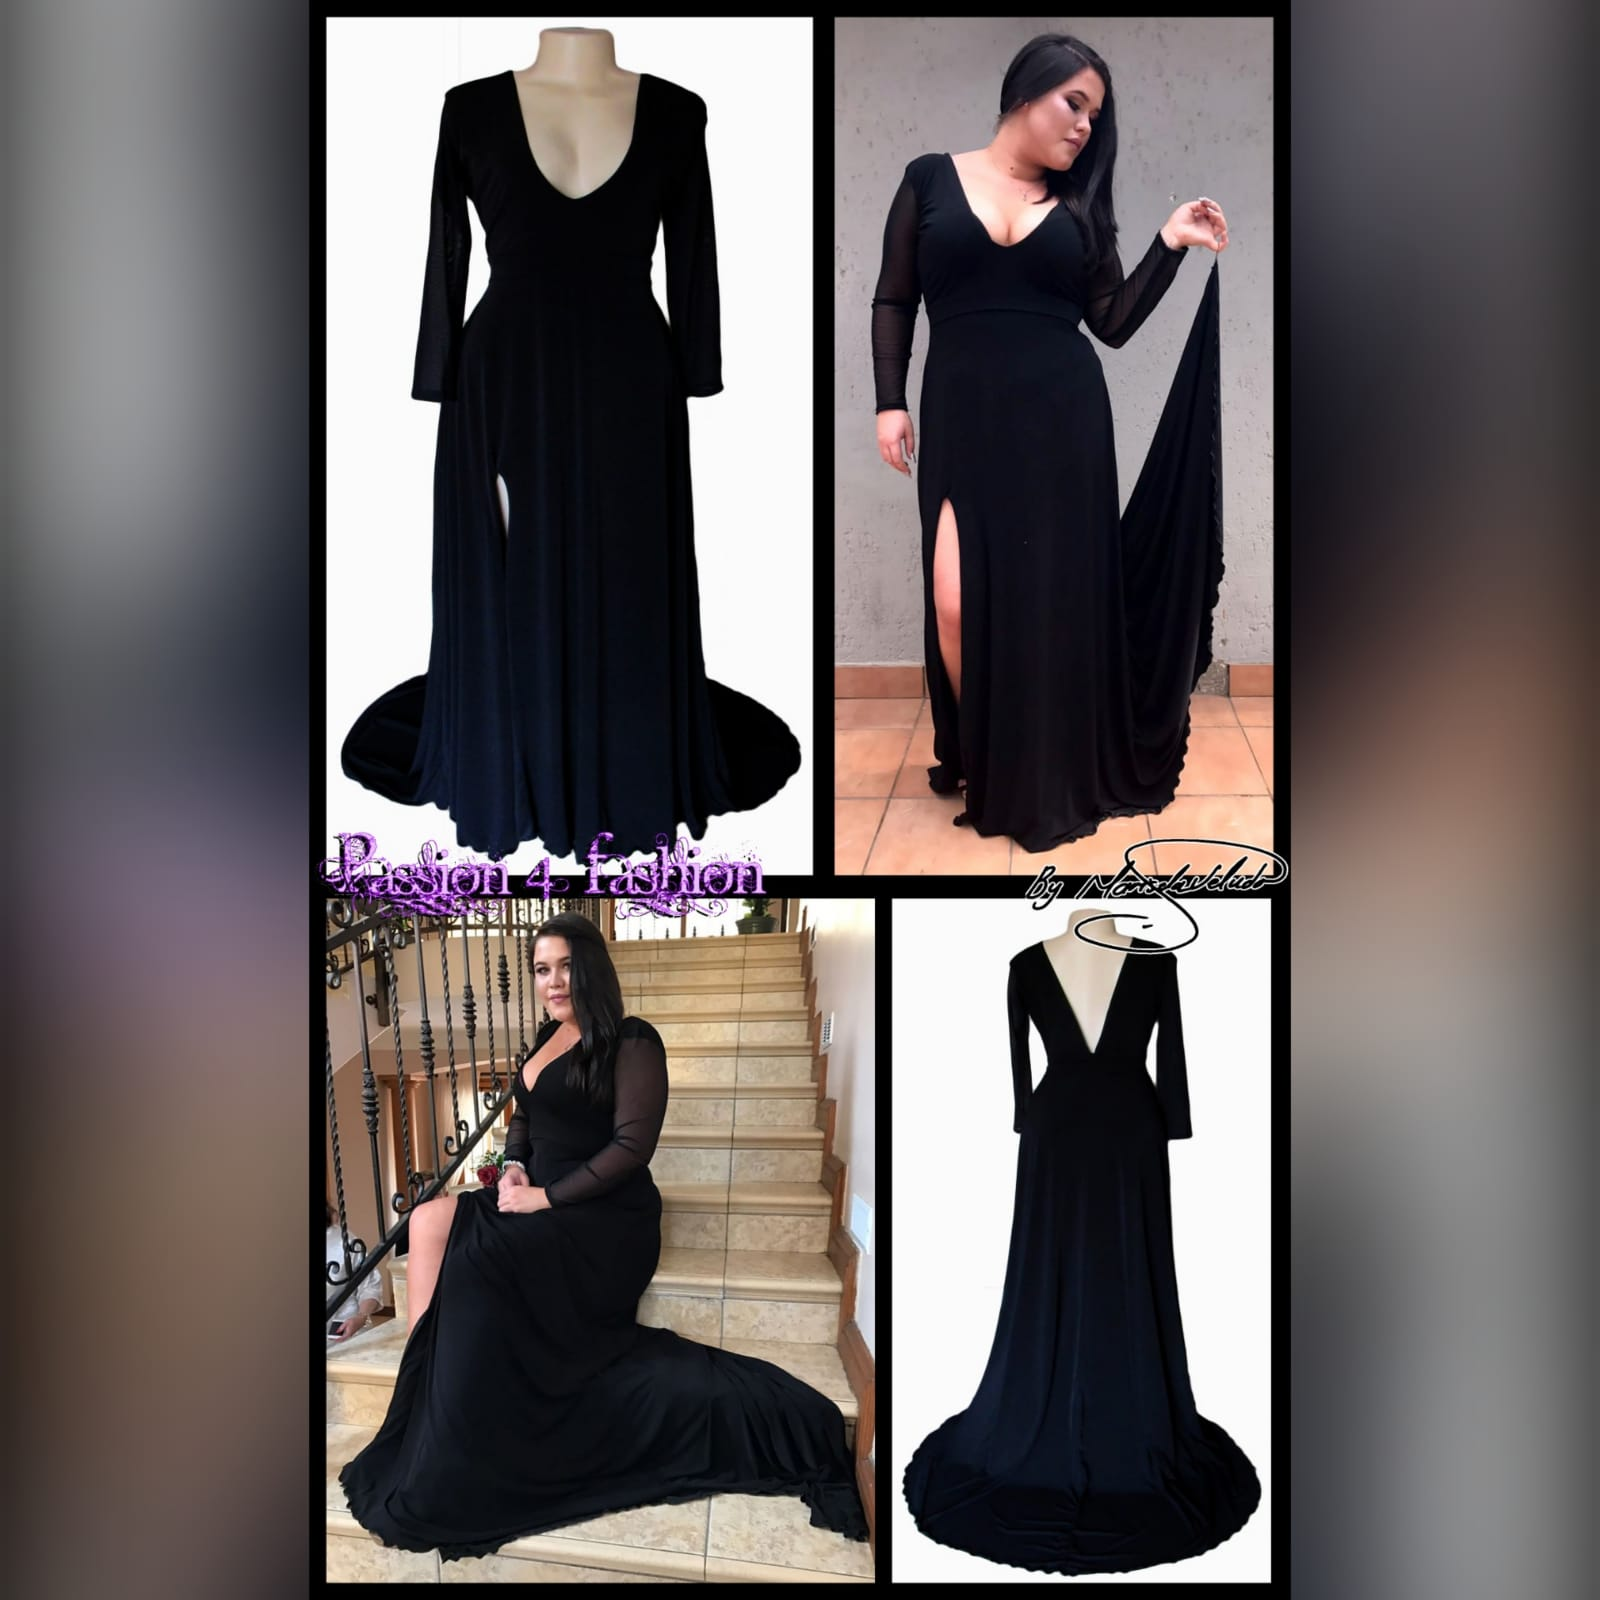 Black simple long formal dress 5 black simple long prom dress with a front and back v neckline. With translucent long sleeves. Slit and a train.